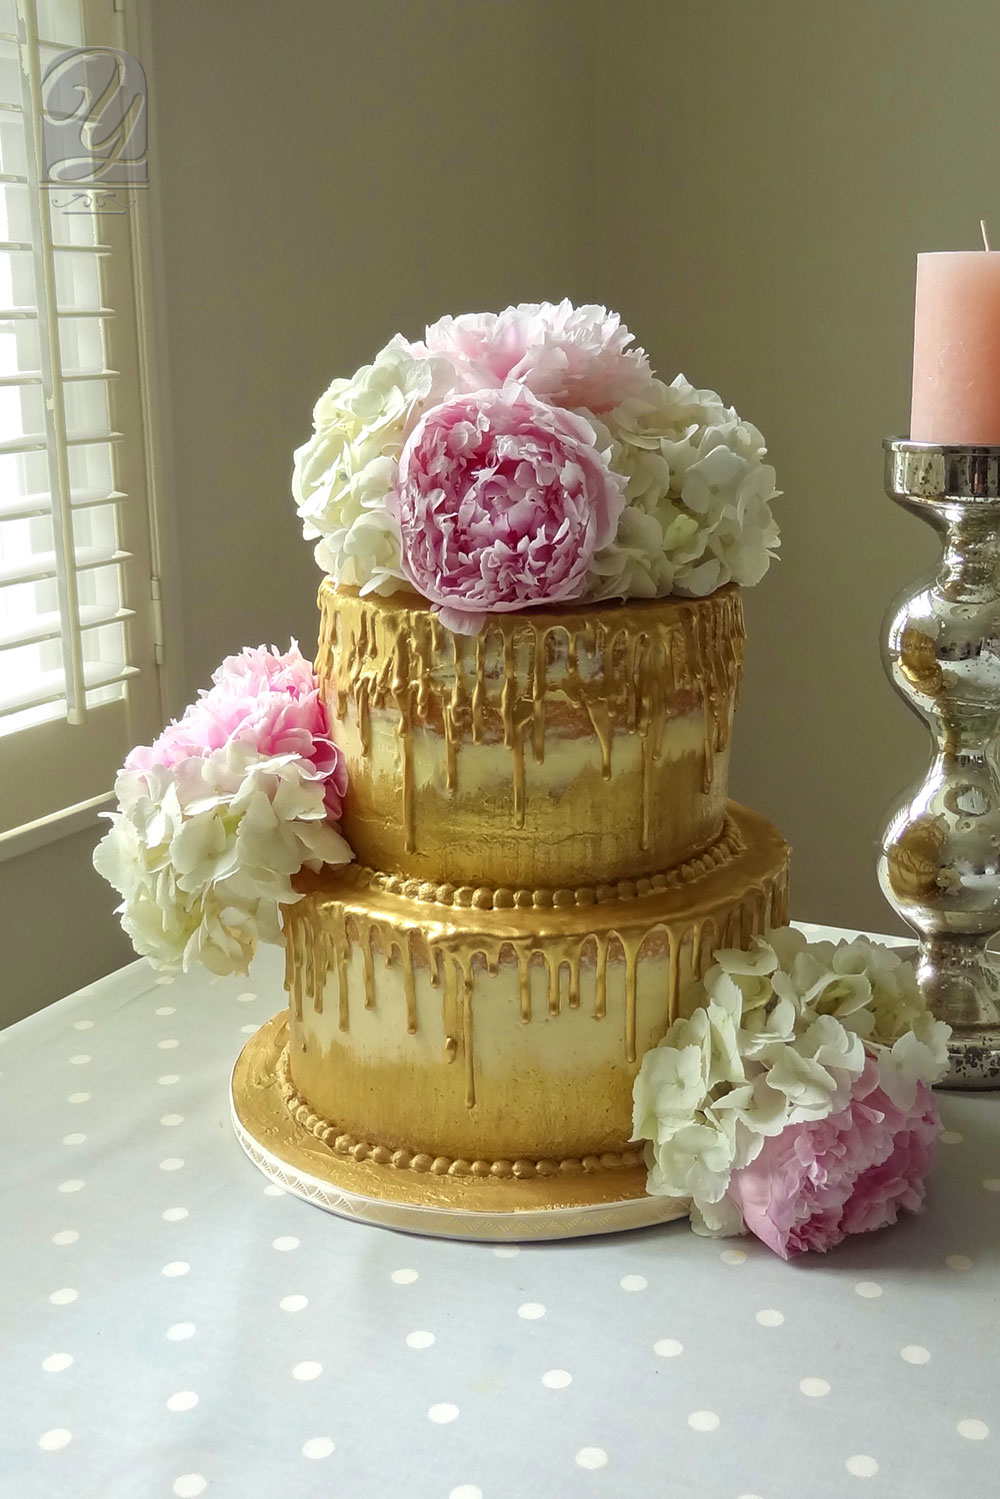 A moist & luxurious naked cake from Unique Cales by Yevnig, drizzled with gold chocolate, decorated with Peony and Hydrangea from Heaven Scent Flowers.